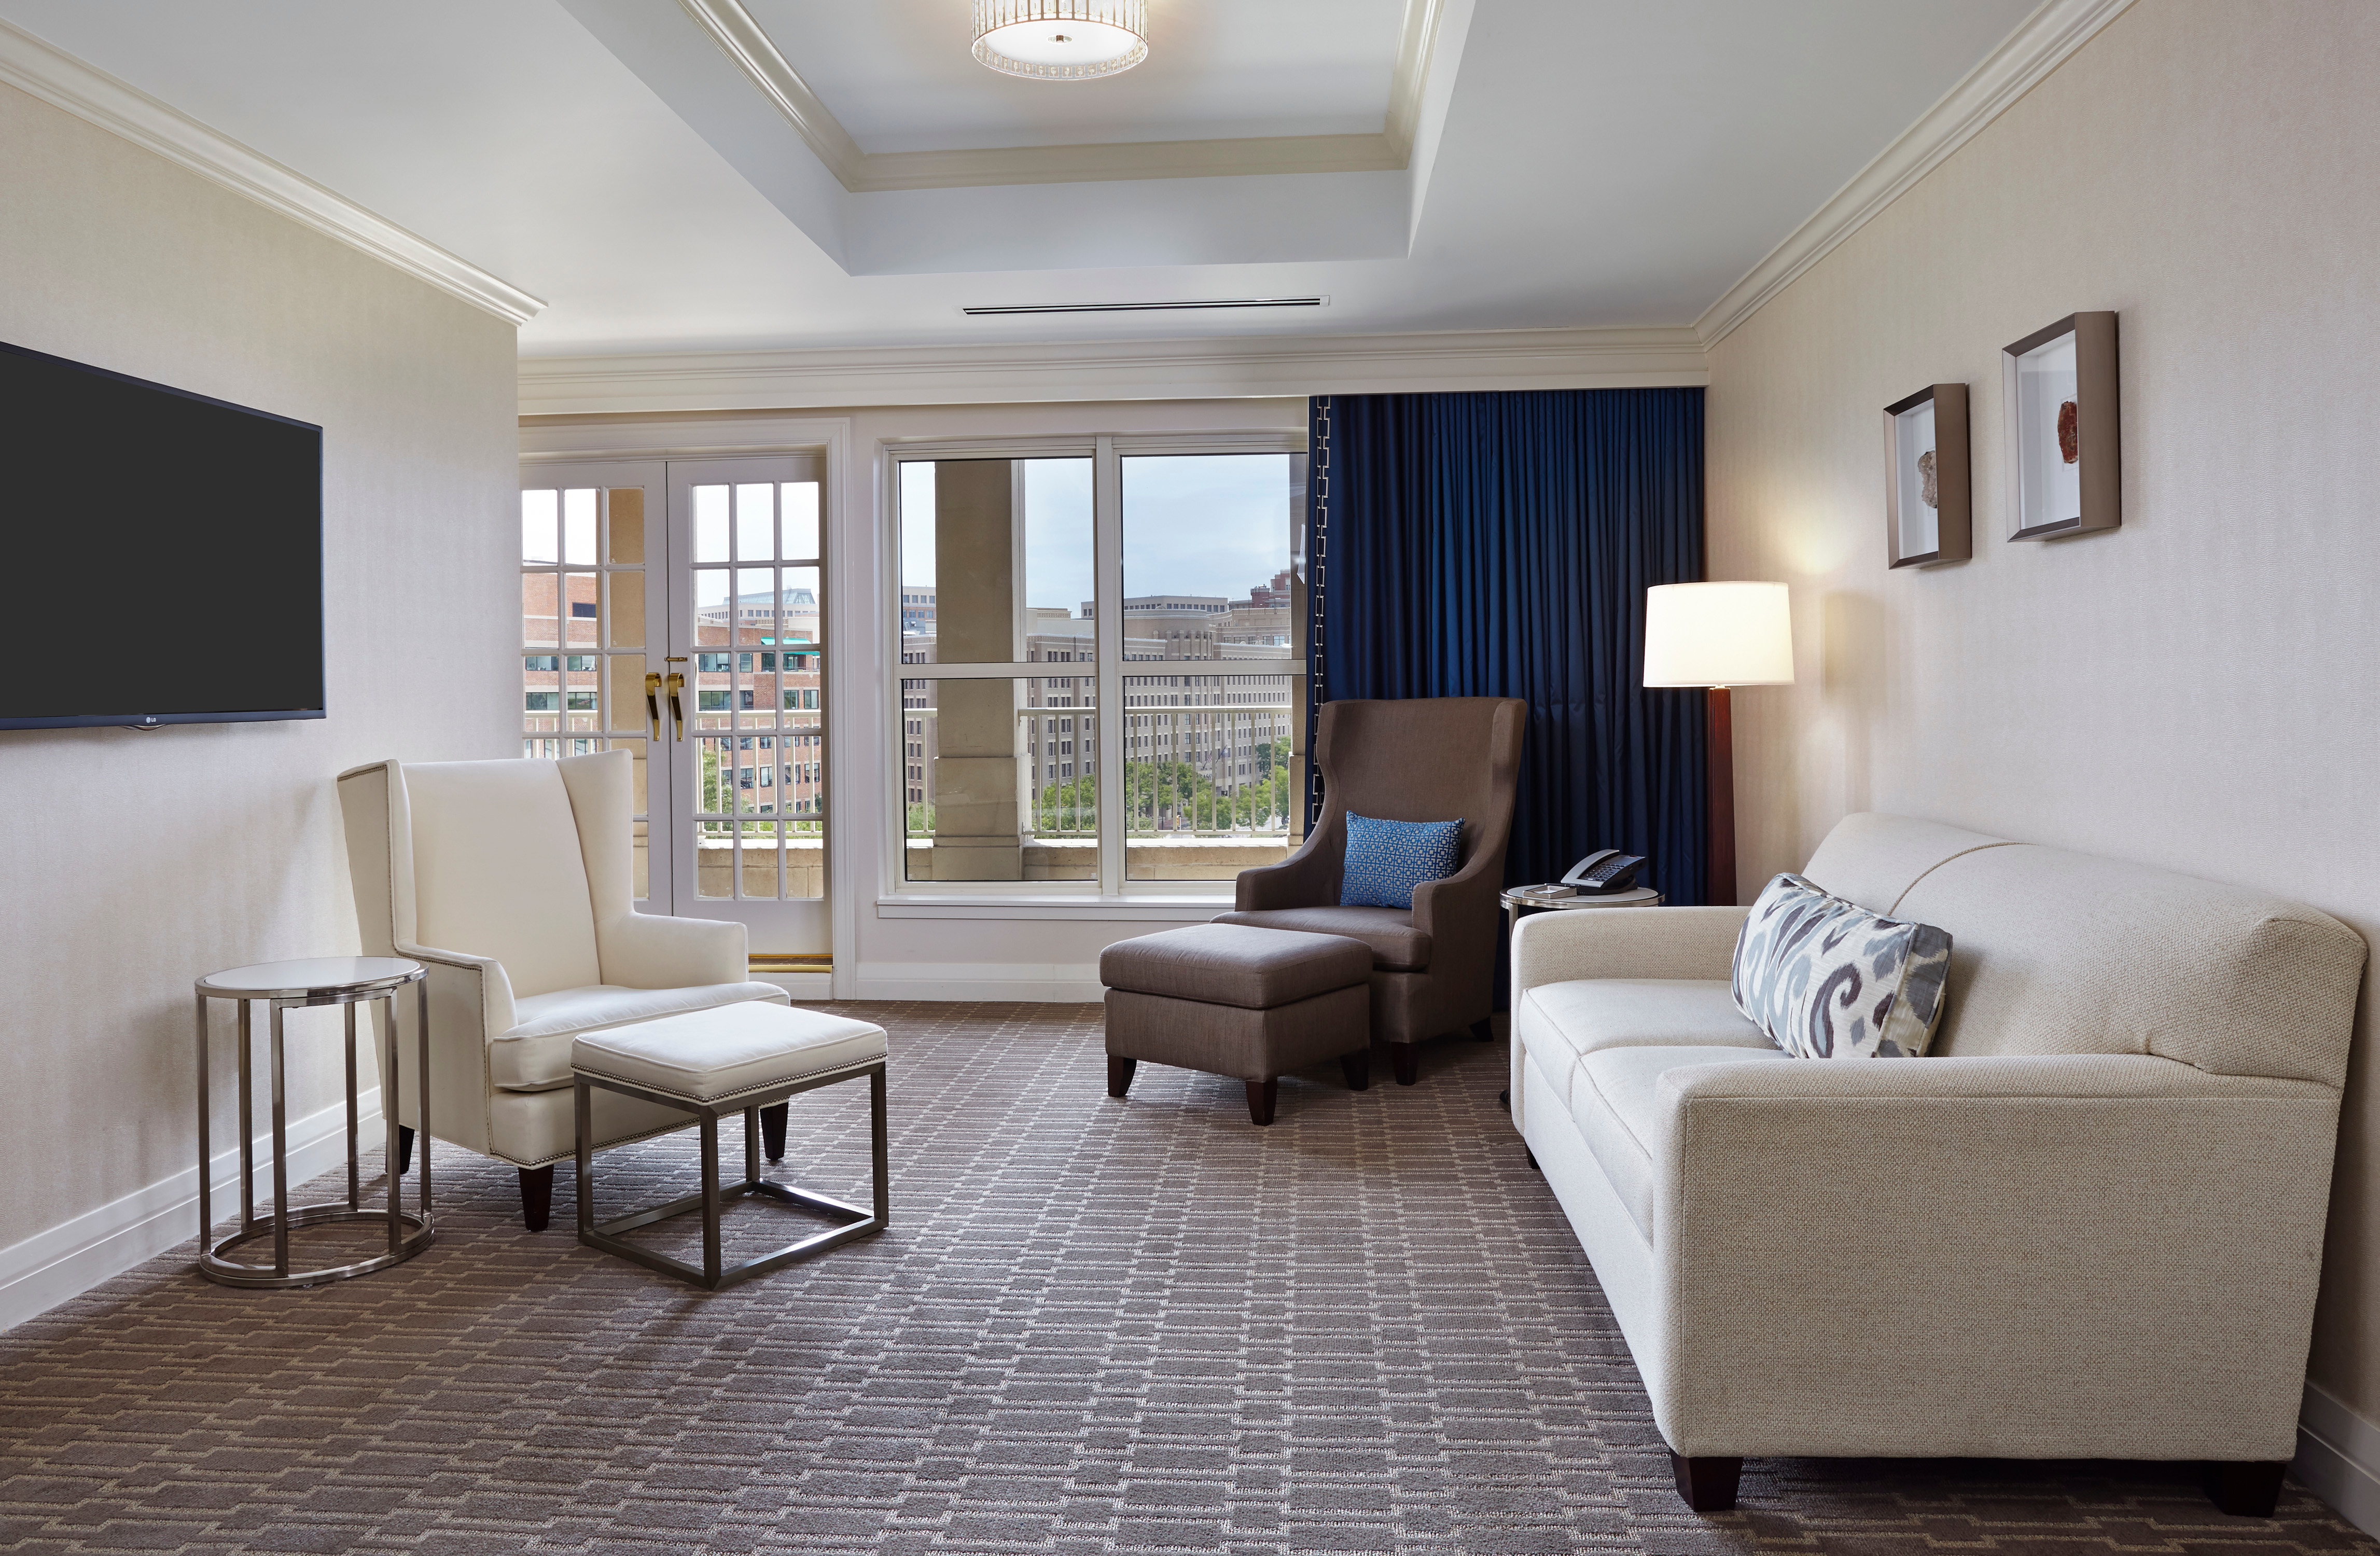 Hilton alexandria old town at 1767 king street alexandria va on fave for Hilton garden inn old town alexandria